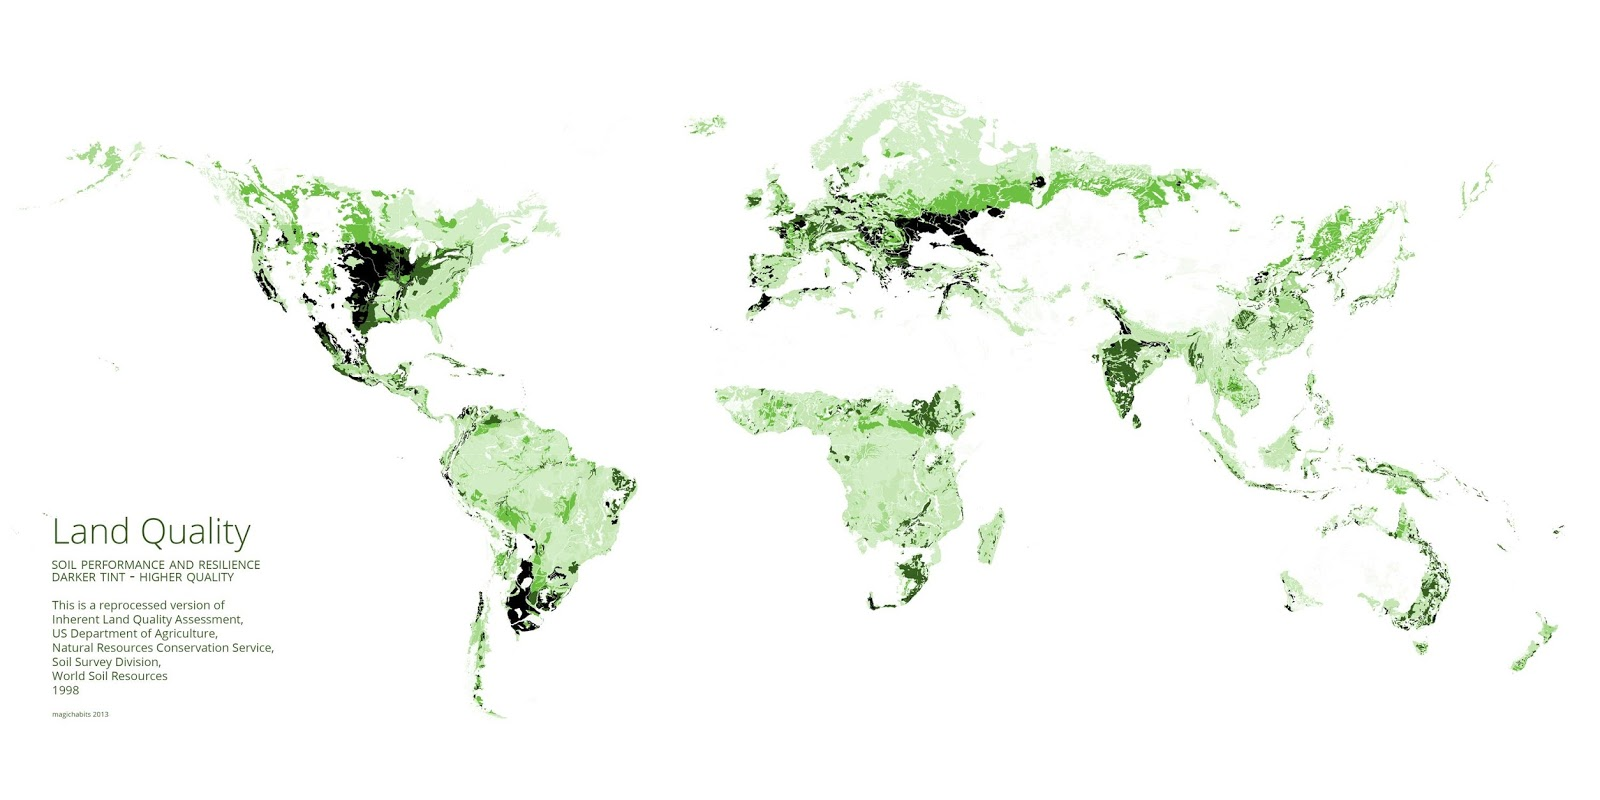 Global Land Quality